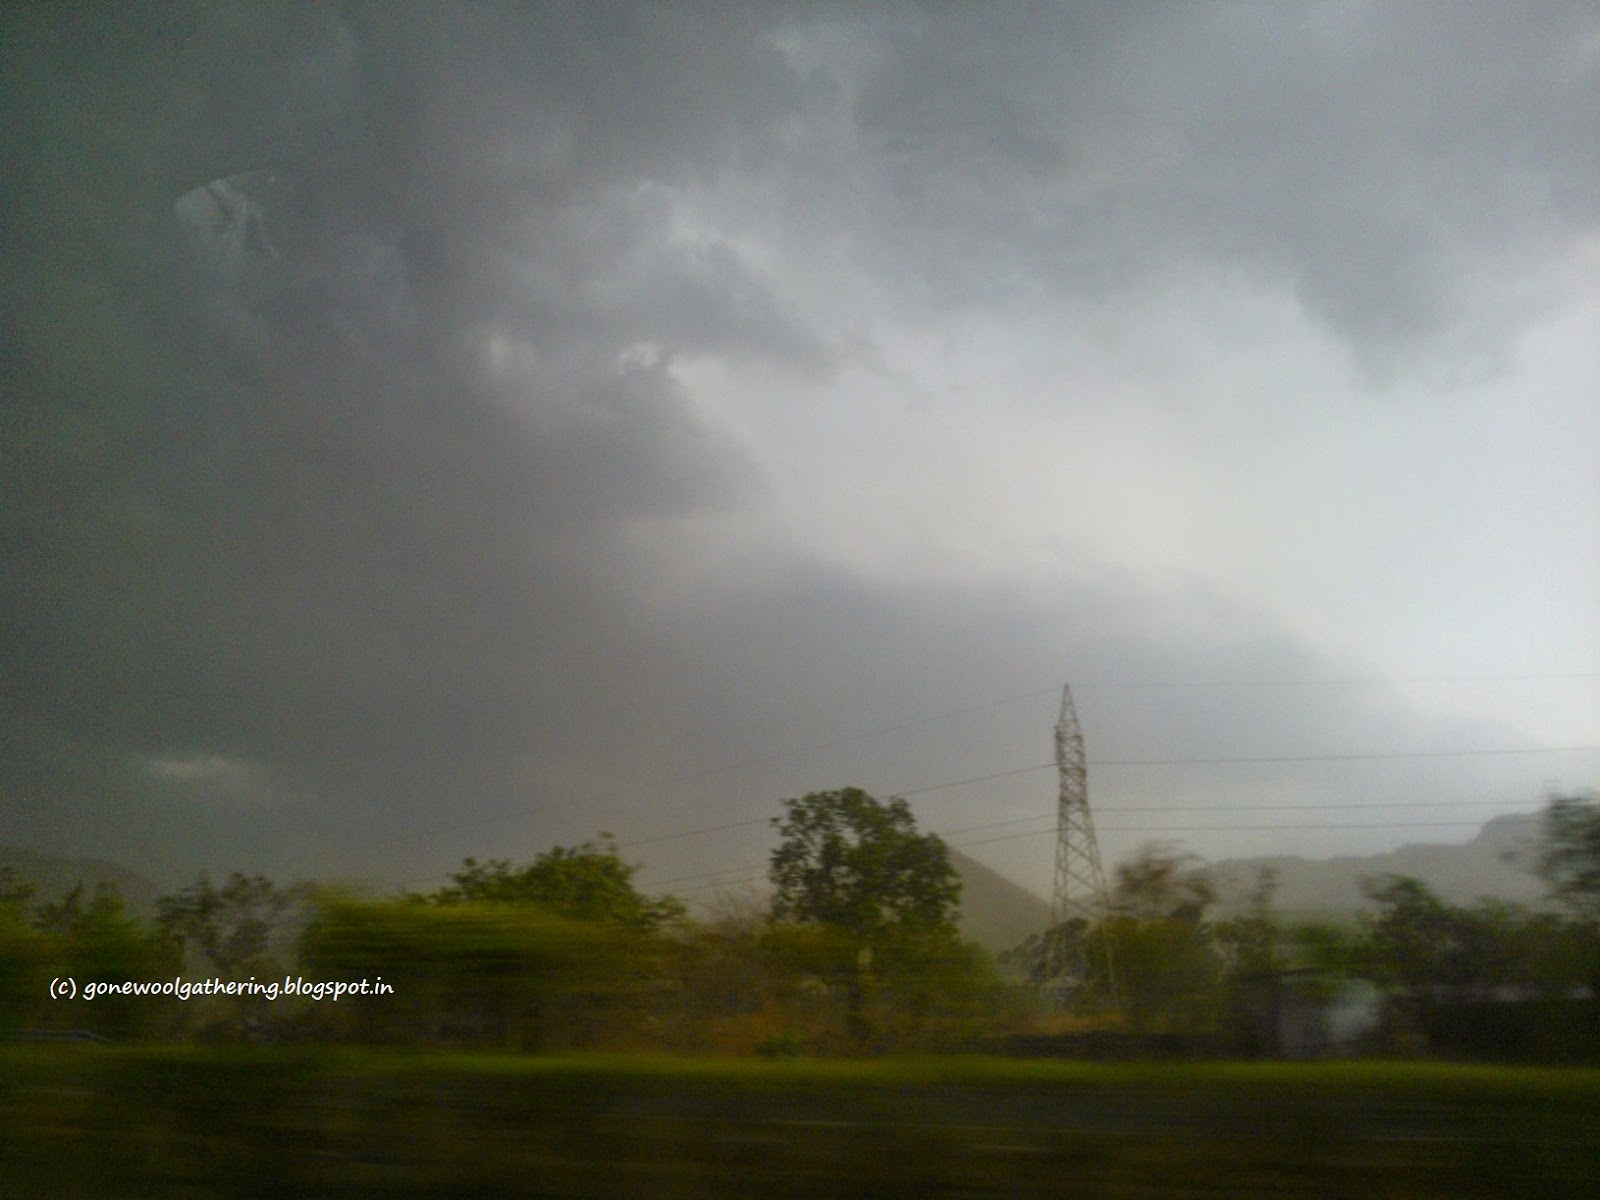 stormy sky pune expressway gonewoolgathering.blogspot.in